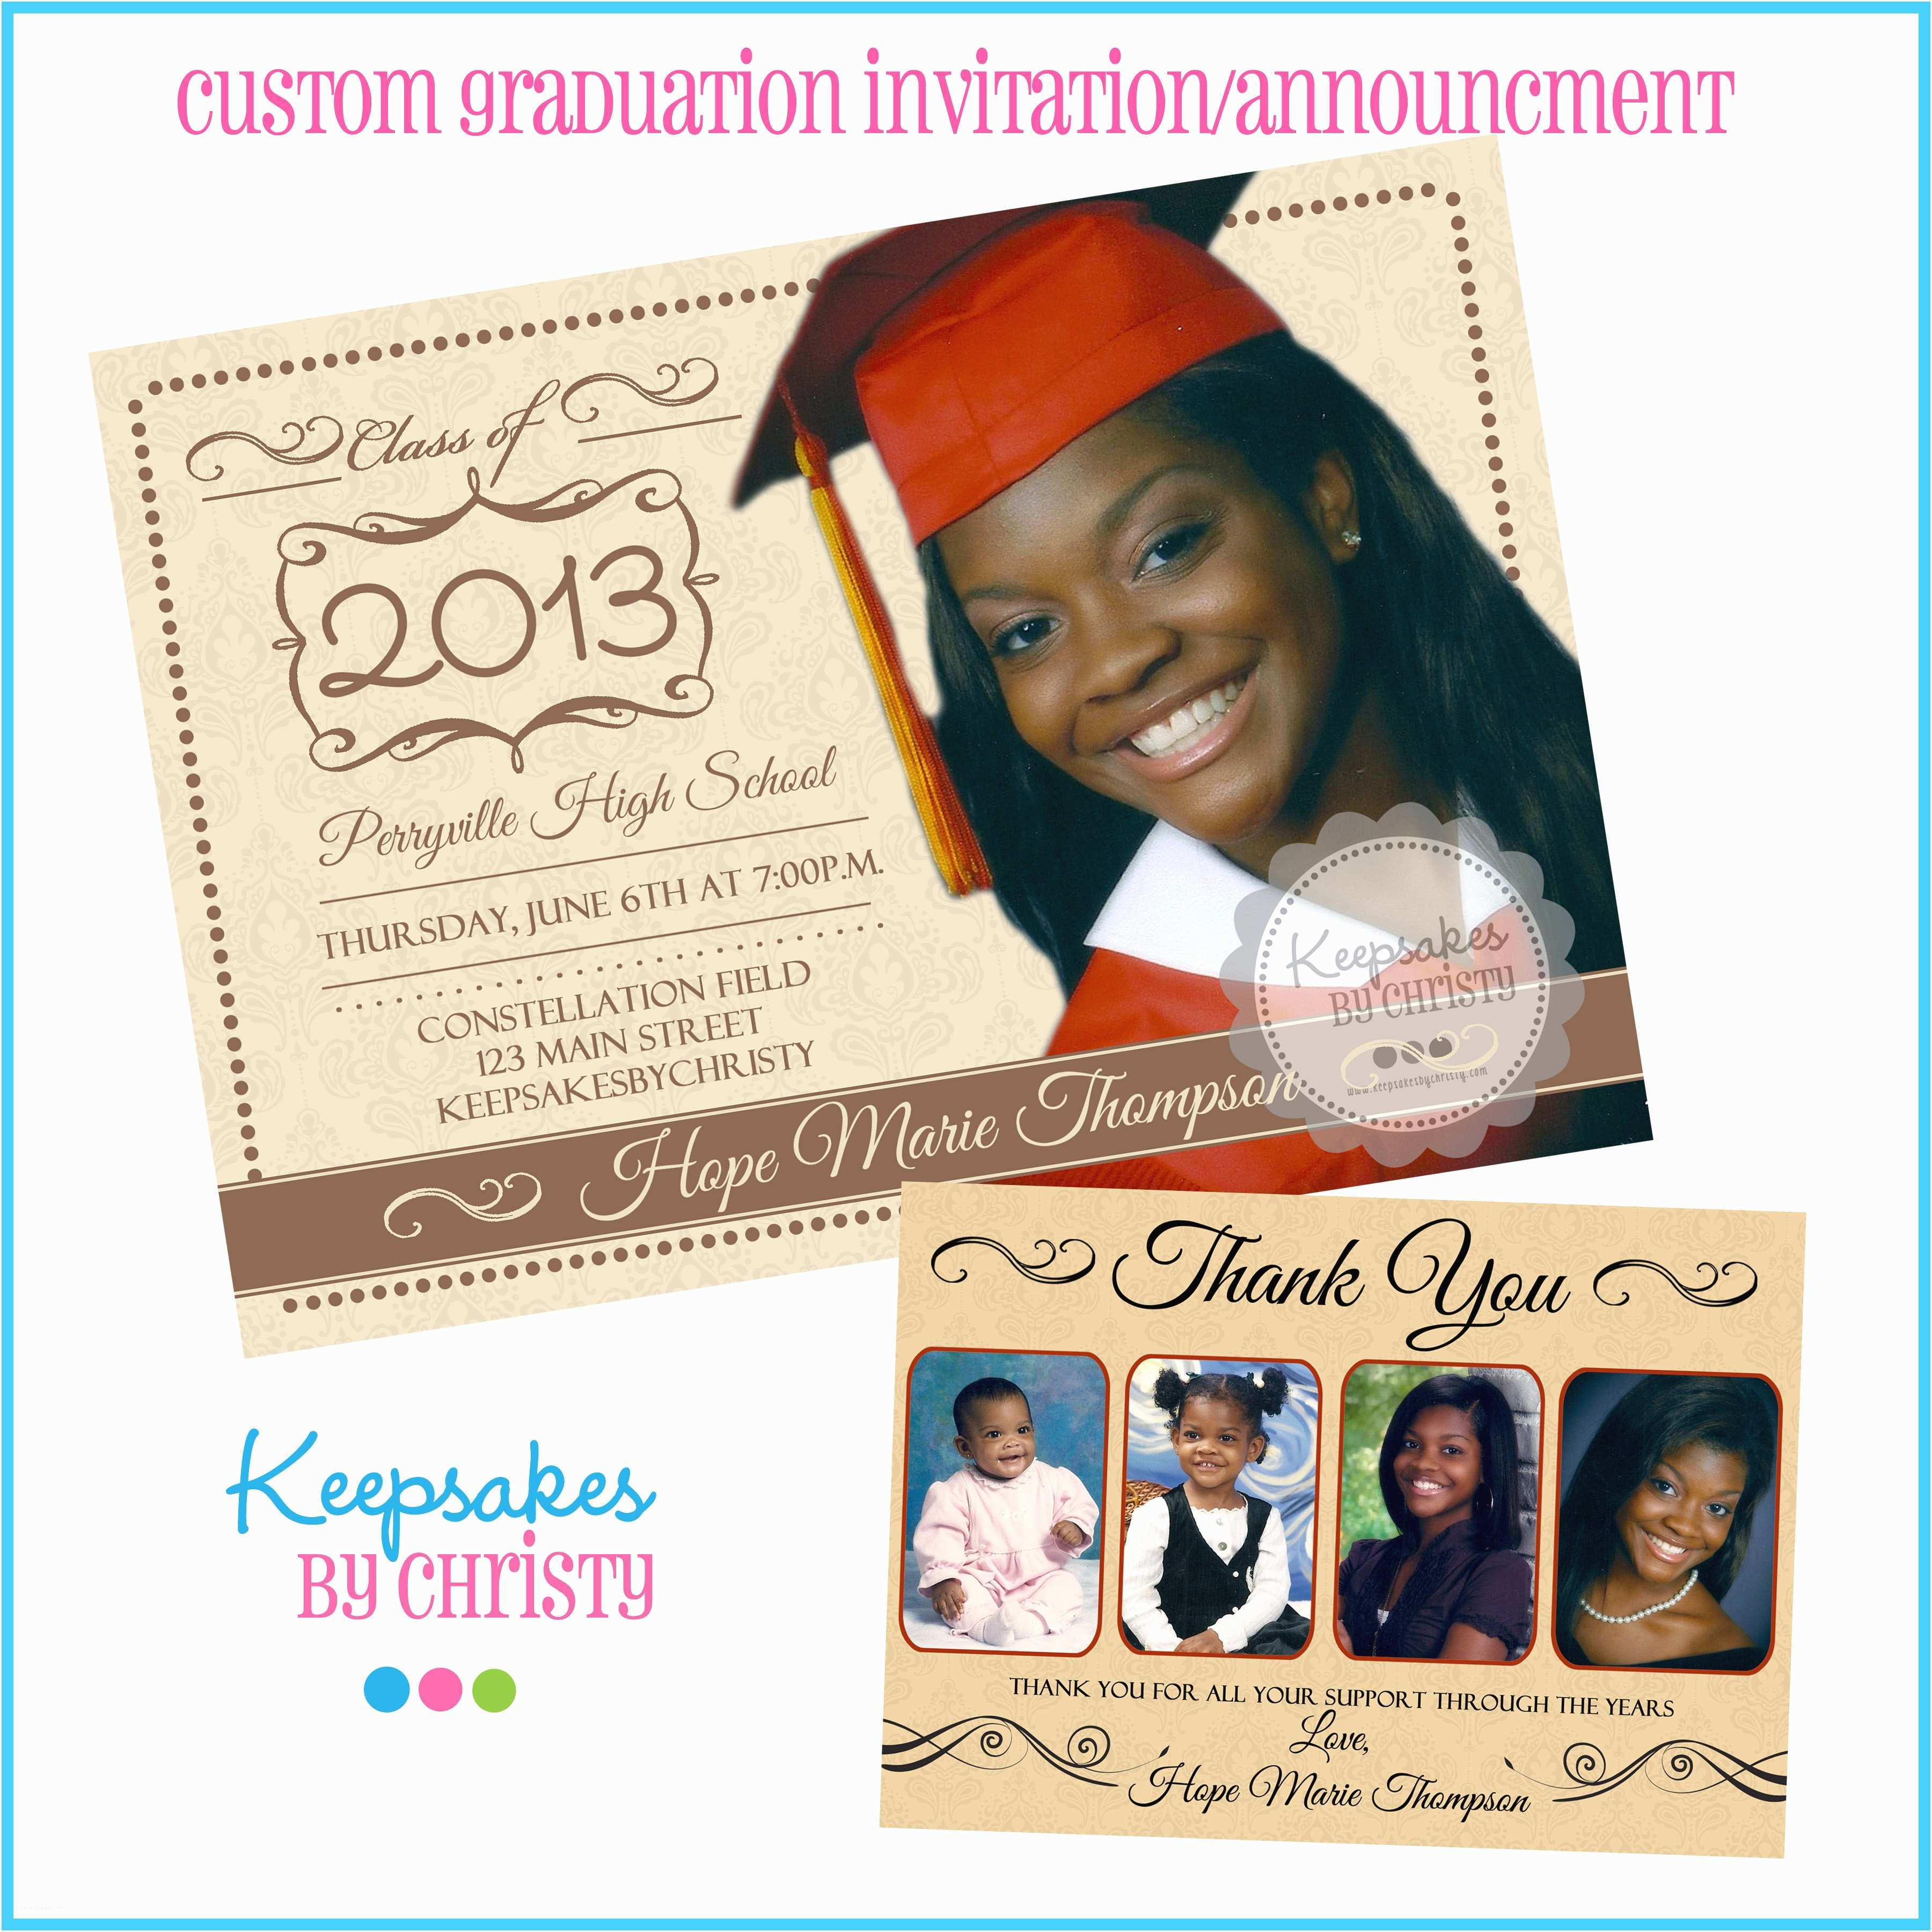 Personalized Graduation Invitations Personalized Graduation Invitations